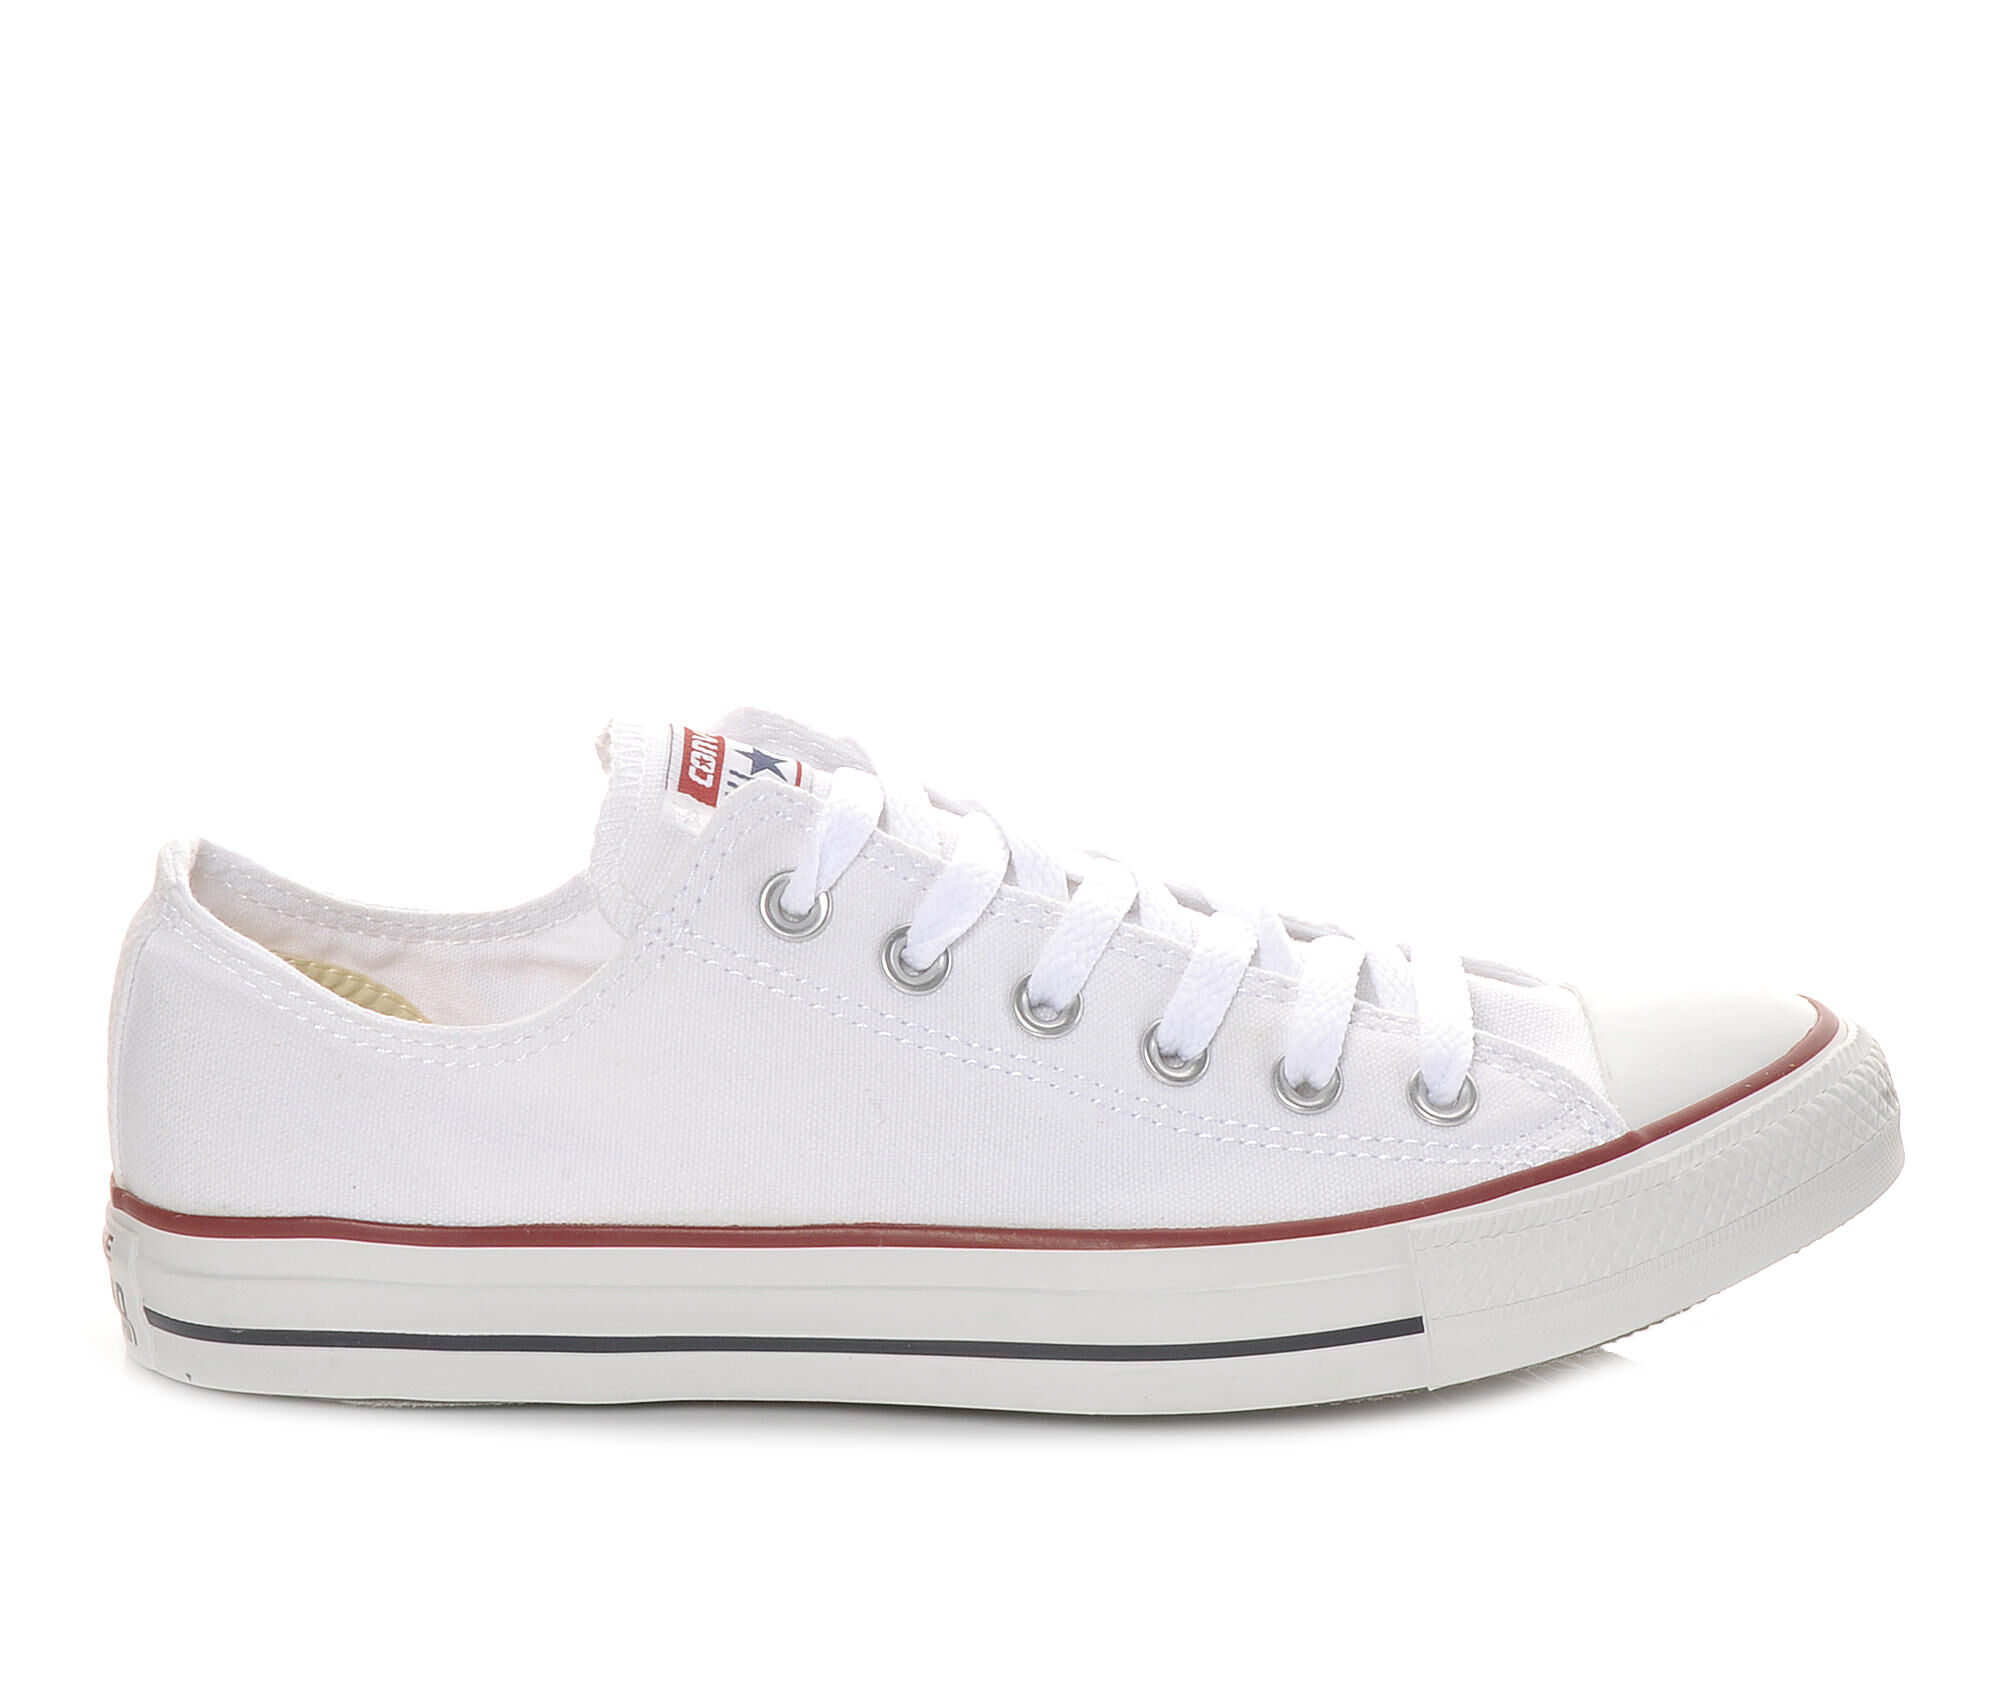 Converse Shoes and Sneakers   Shoe Carnival